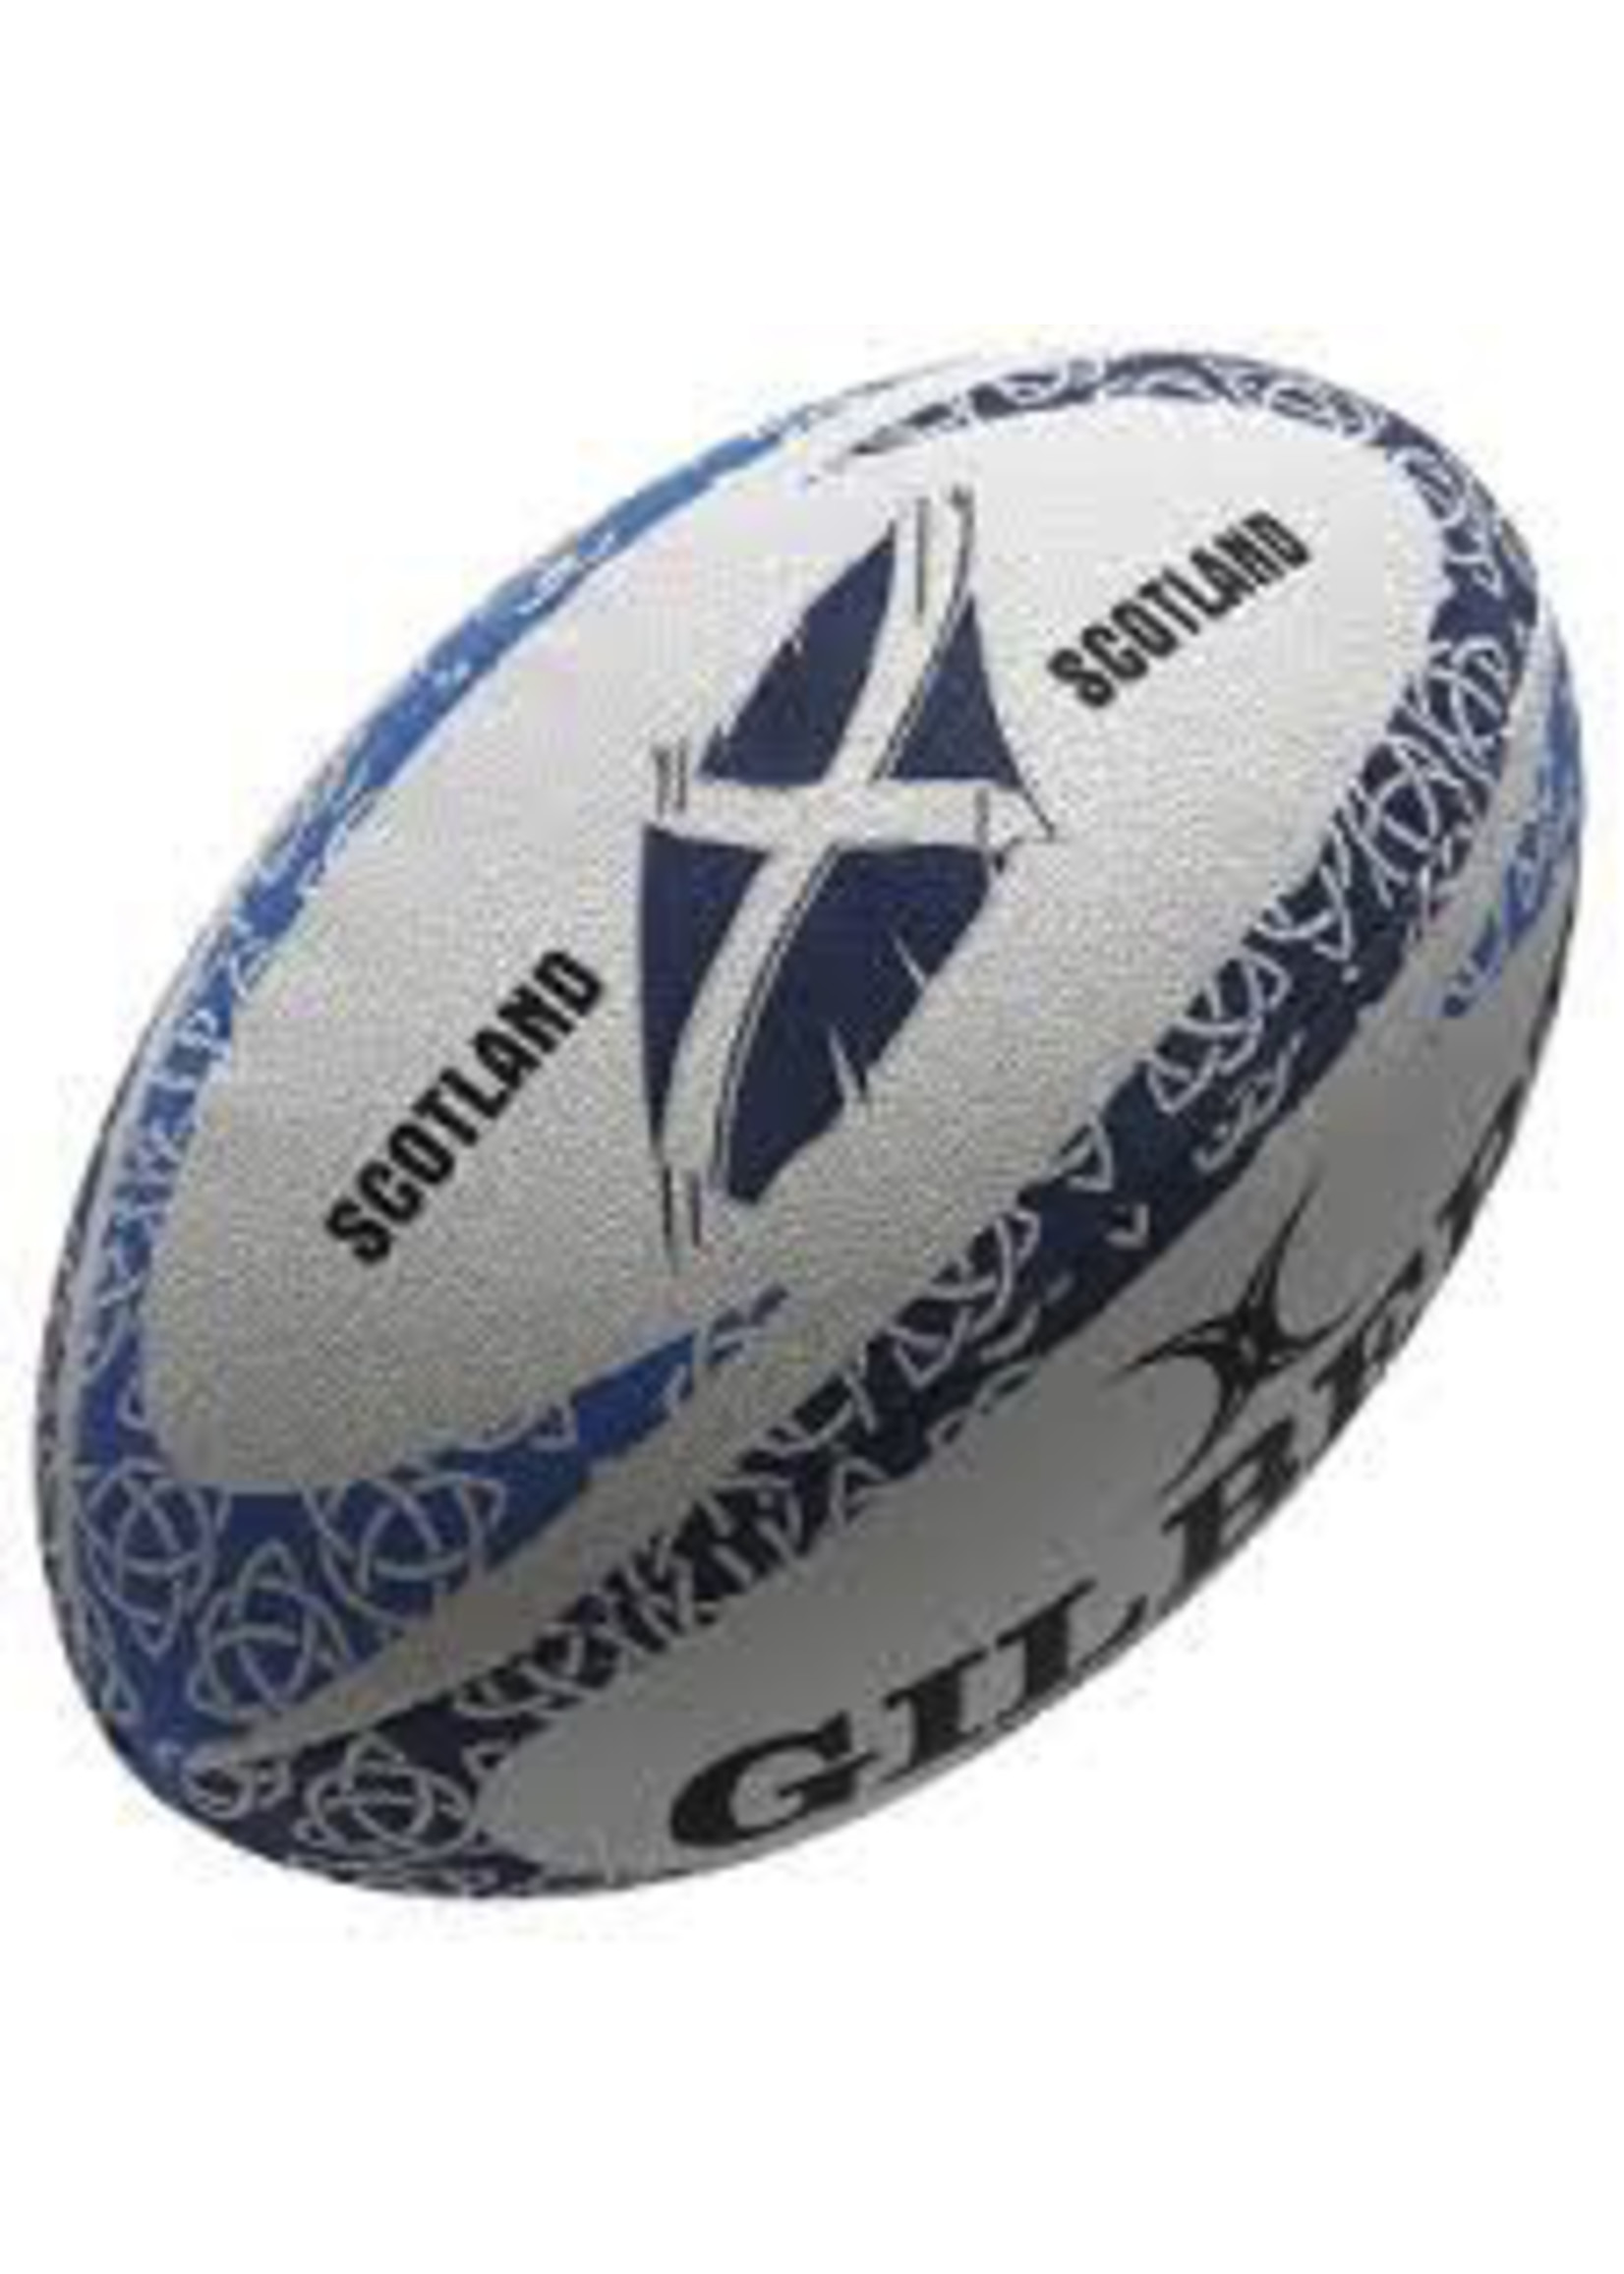 Gilbert Memo Anthem Rugby Ball, Size 5